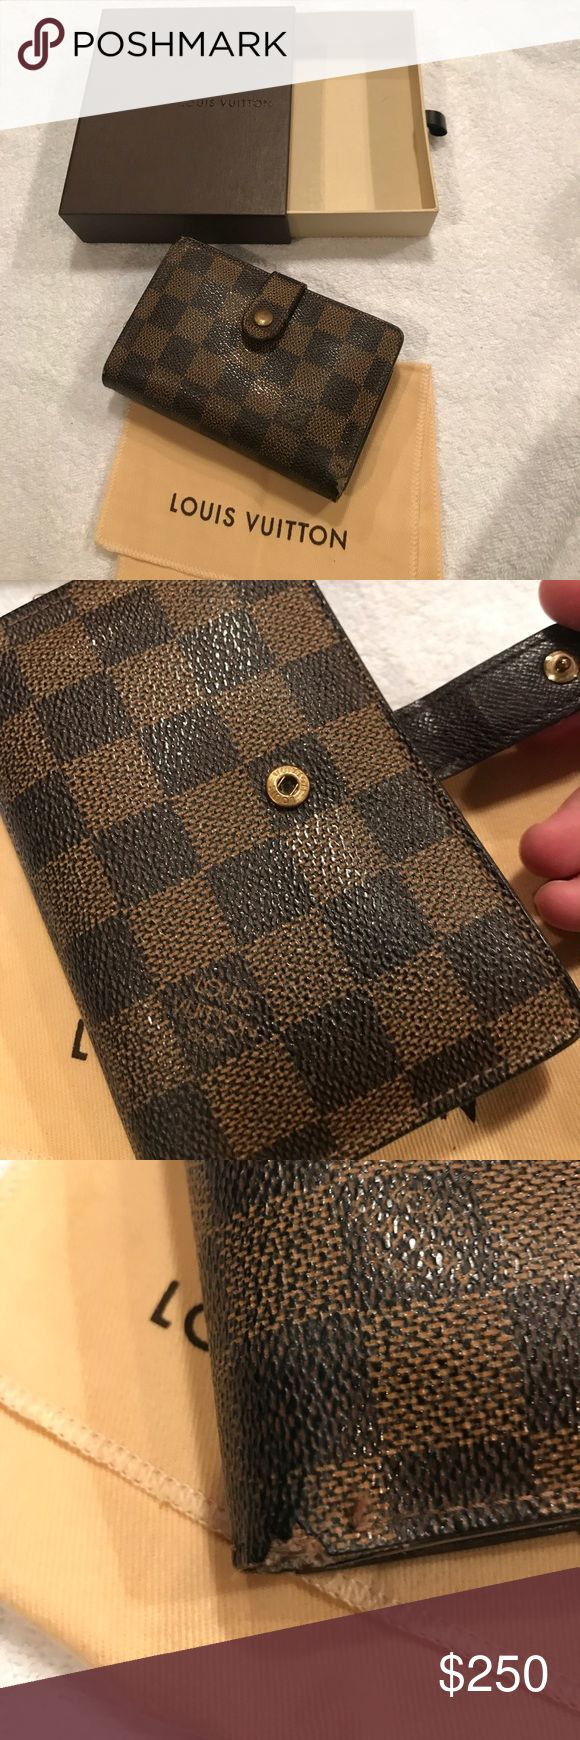 Authentic Louis Vuitton French Purse Wallet Authentic Louis Vuitton French Purse Wallet (current model #M61674) in condition as shown- please note the corners in pictures as wear is consistent with age. Includes box and dust  bag. Price is firm. Louis Vuitton Bags Wallets